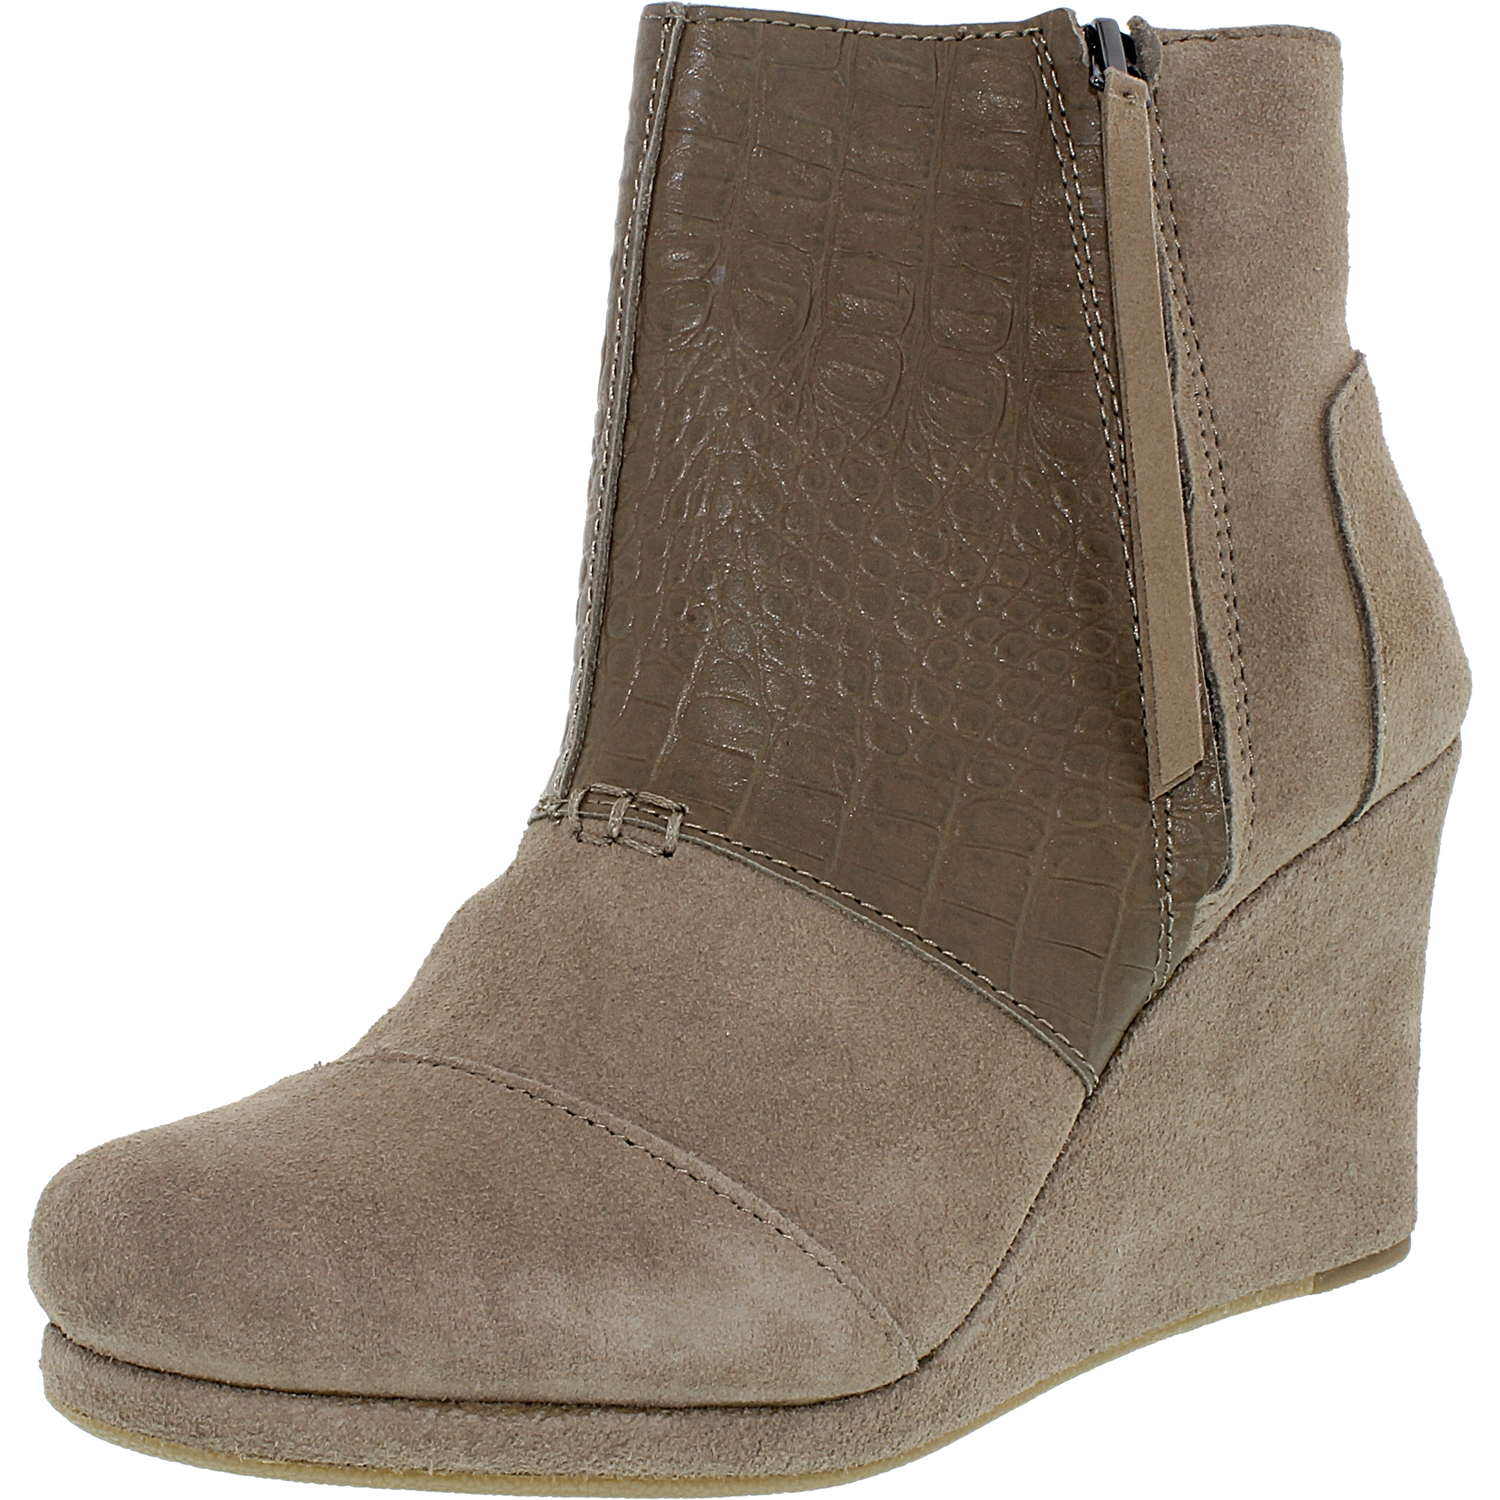 6363ba535911 Toms - Toms Women's Desert Wedge High Taupe Suede Croc Emboss Ankle-High  Boot - 7.5M - Walmart.com